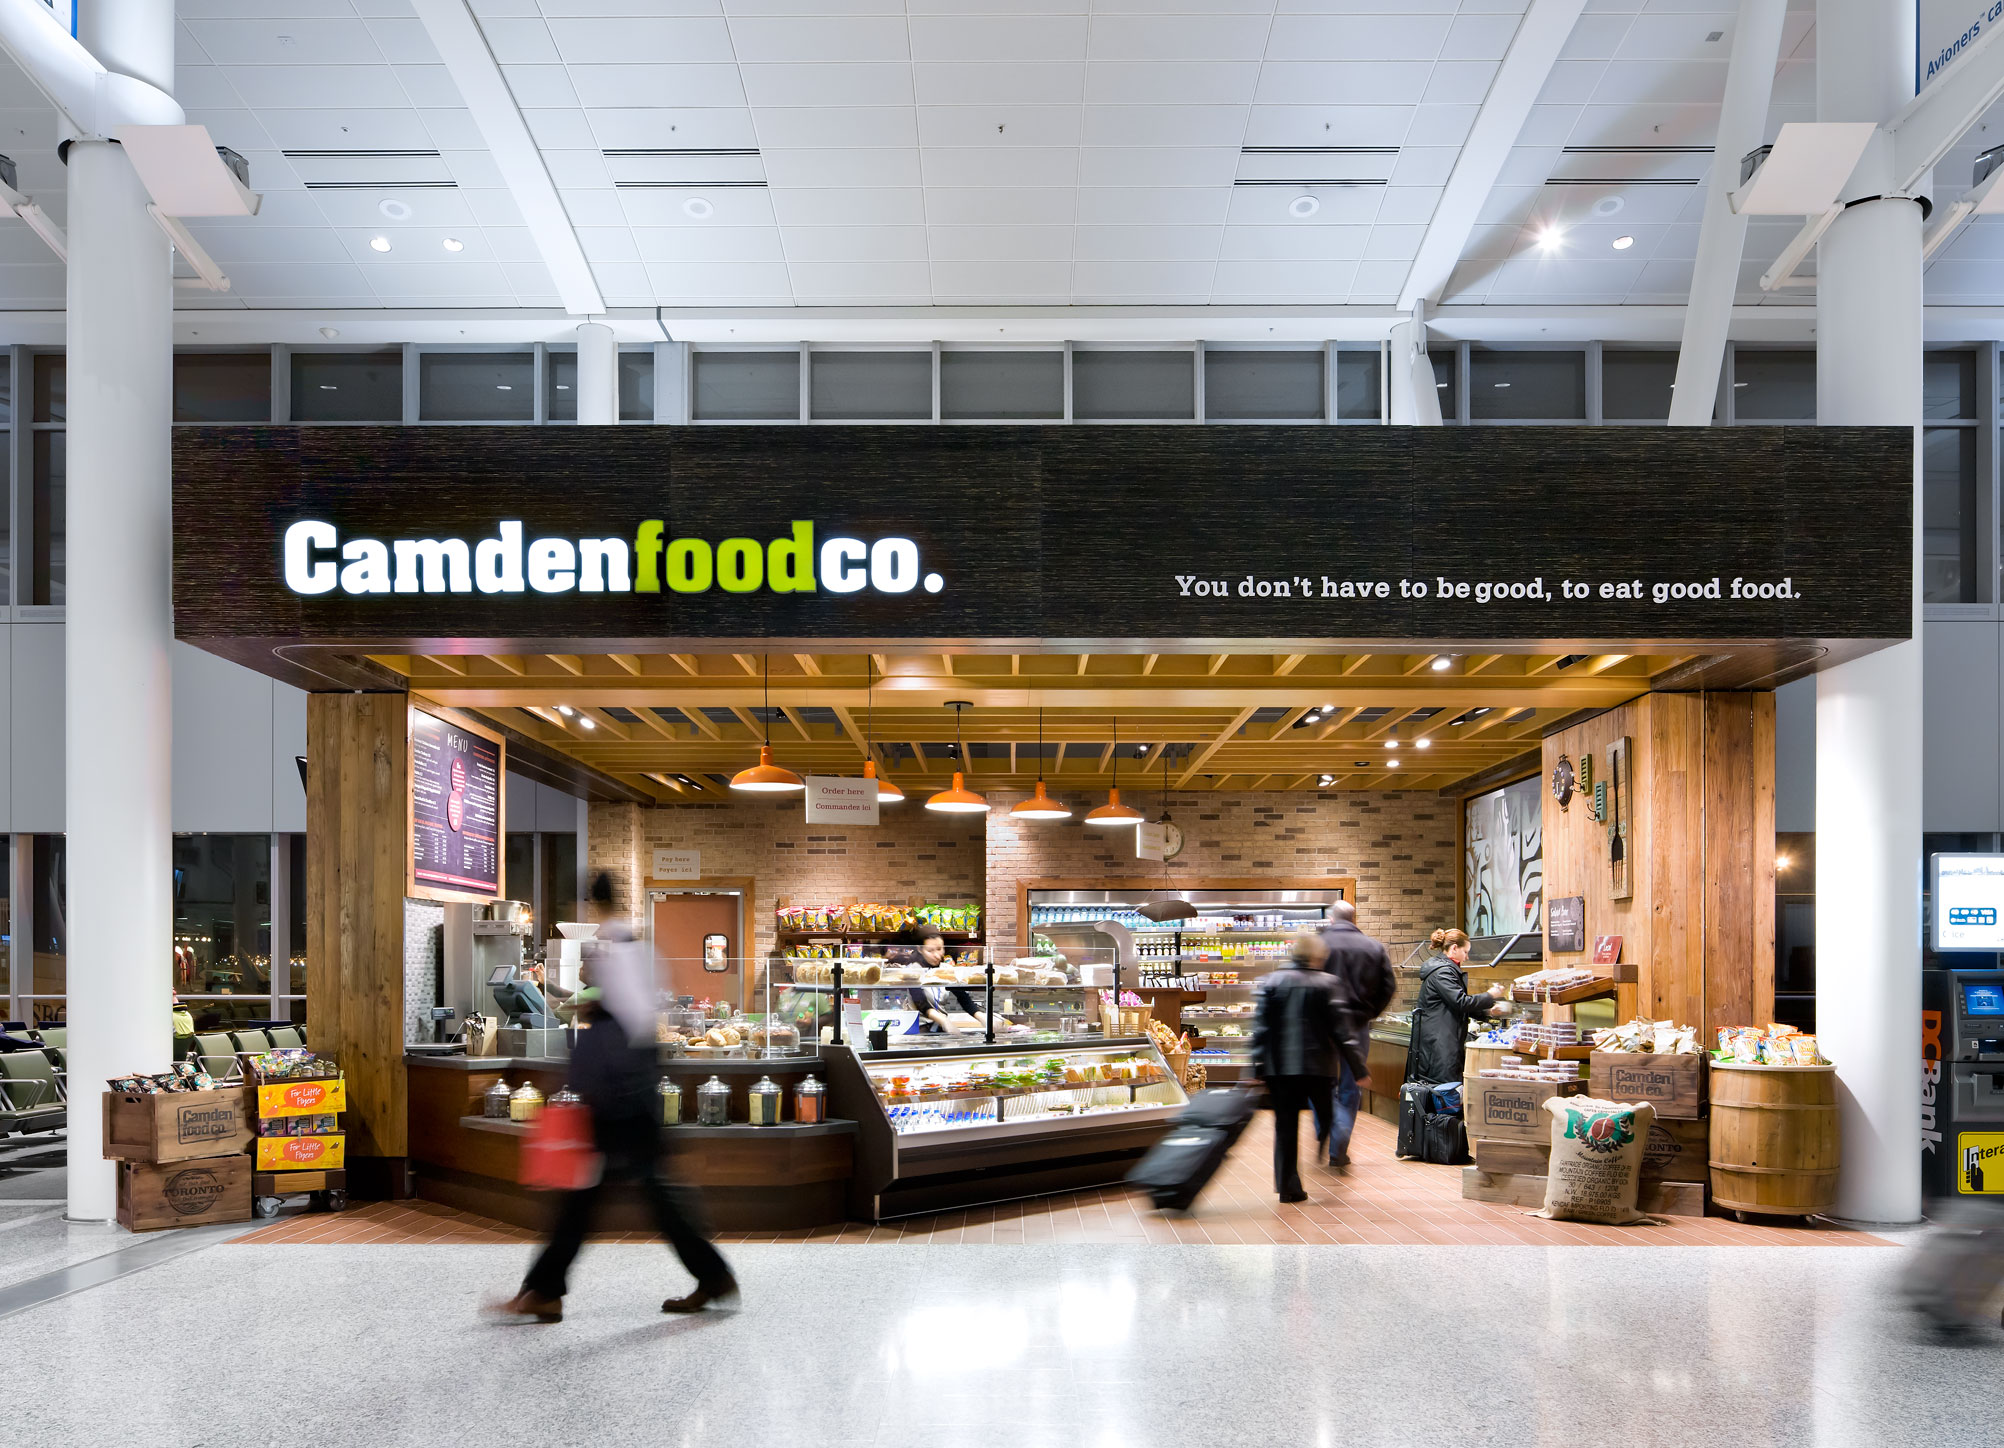 Cover image: Camden Food Co